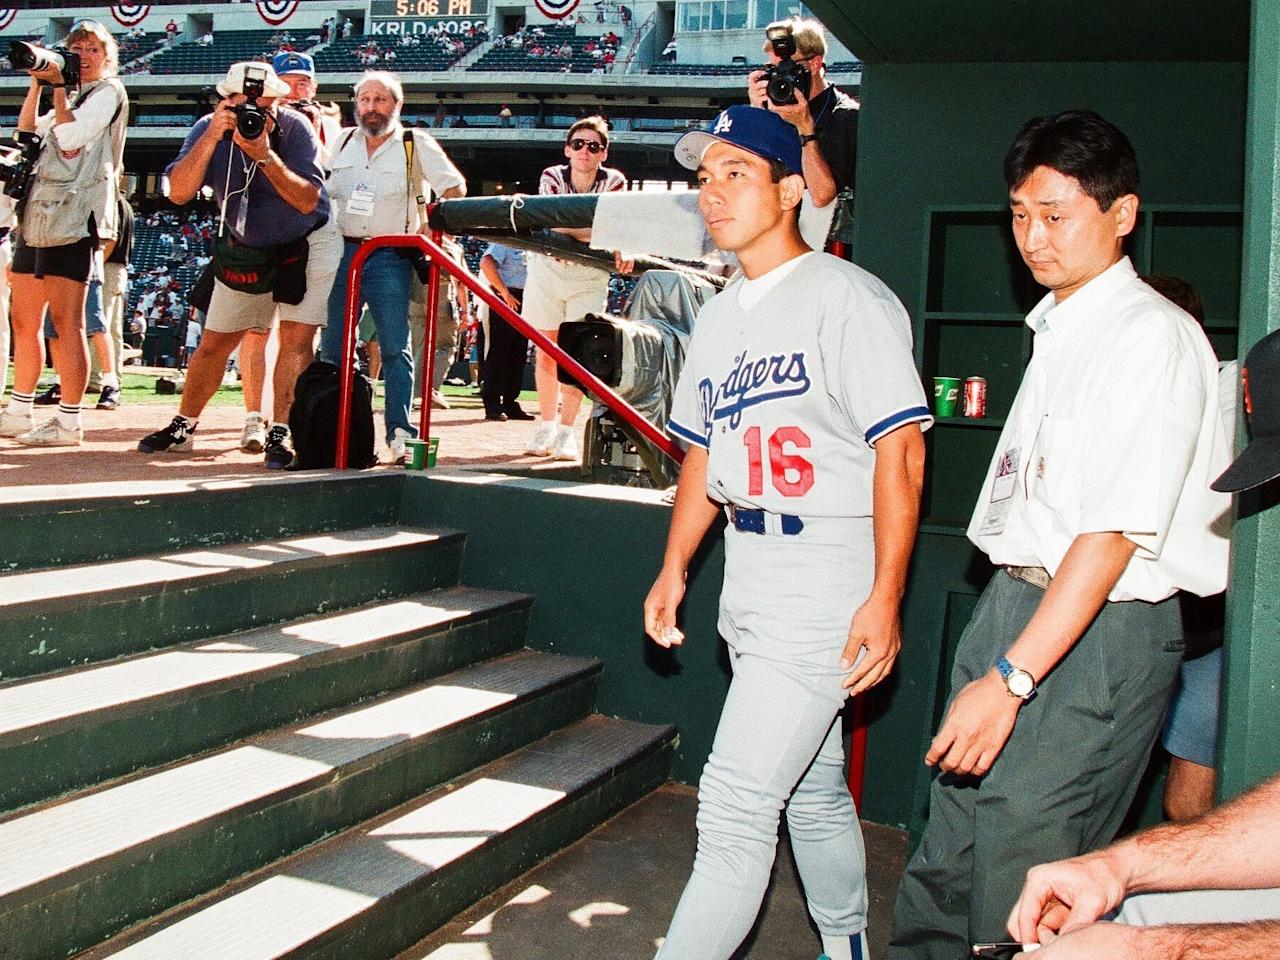 """<p>It's been 29 years since Orel Hershiser <a rel=""""nofollow"""" href=""""https://www.youtube.com/watch?v=8-x3x-Pe4dY"""">fanned Oakland's Tony Phillips</a> swinging, delivering the Dodgers to their sixth world championship in franchise history. """"Like the 1969 Mets, it's the impossible dream revisited,"""" said announcer Vin Scully of the significantly undermanned squad's upset victory over the brash and brawny A's, who were just beginning a run of three straight pennants.</p><p>Though they've made 11 trips to the postseason since 1988 and advanced to the National League Championship Series five times, the Dodgers hadn't punched their tickets back to the World Series until last Thursday, when <a rel=""""nofollow"""" href=""""https://www.si.com/mlb/2017/10/19/hernandez-three-homers-dodgers-world-series-1988"""">Kiké Hernandez's three home runs</a> and Clayton Kershaw's six strong innings keyed an 11–1 romp over the defending world champion Cubs at Wrigley Field. What follows here is a more or less chronological trip through 29 highs and lows in Dodger history, on the field and off—thrills, heartbreak, money flushed down the drain, and public relations disasters—over the past 29 seasons.</p><p><strong>1. Hershiser's sneaky-great follow-up (1989)</strong></p><p>Hershiser's 1988 season was one for the ages: a 23–8 record with a 2.26 ERA, 15 complete games and eight shutouts, five of them in the service of setting a still-standing record of 59 consecutive scoreless innings. That garnered him a unanimous NL Cy Young award, while his 3–0, 1.05 ERA postseason run (with one crucial save) earned him LCS and World Series MVP honors; at the end of the year, he won the <a rel=""""nofollow"""" href=""""https://www.si.com/vault/1988/12/19/119091/deep-roots-in-shattering-one-of-baseballs-most-imposing-records-and-then-pitching-the-dodgers-to-victory-in-the-world-series-orel-hershiser-iv-drew-on-a-boyhood-spent-excelling-in-sports-and-a-devotion-to-the-fun""""><em>Sports Illustrated</em> Sportsman of the Year</a> award"""